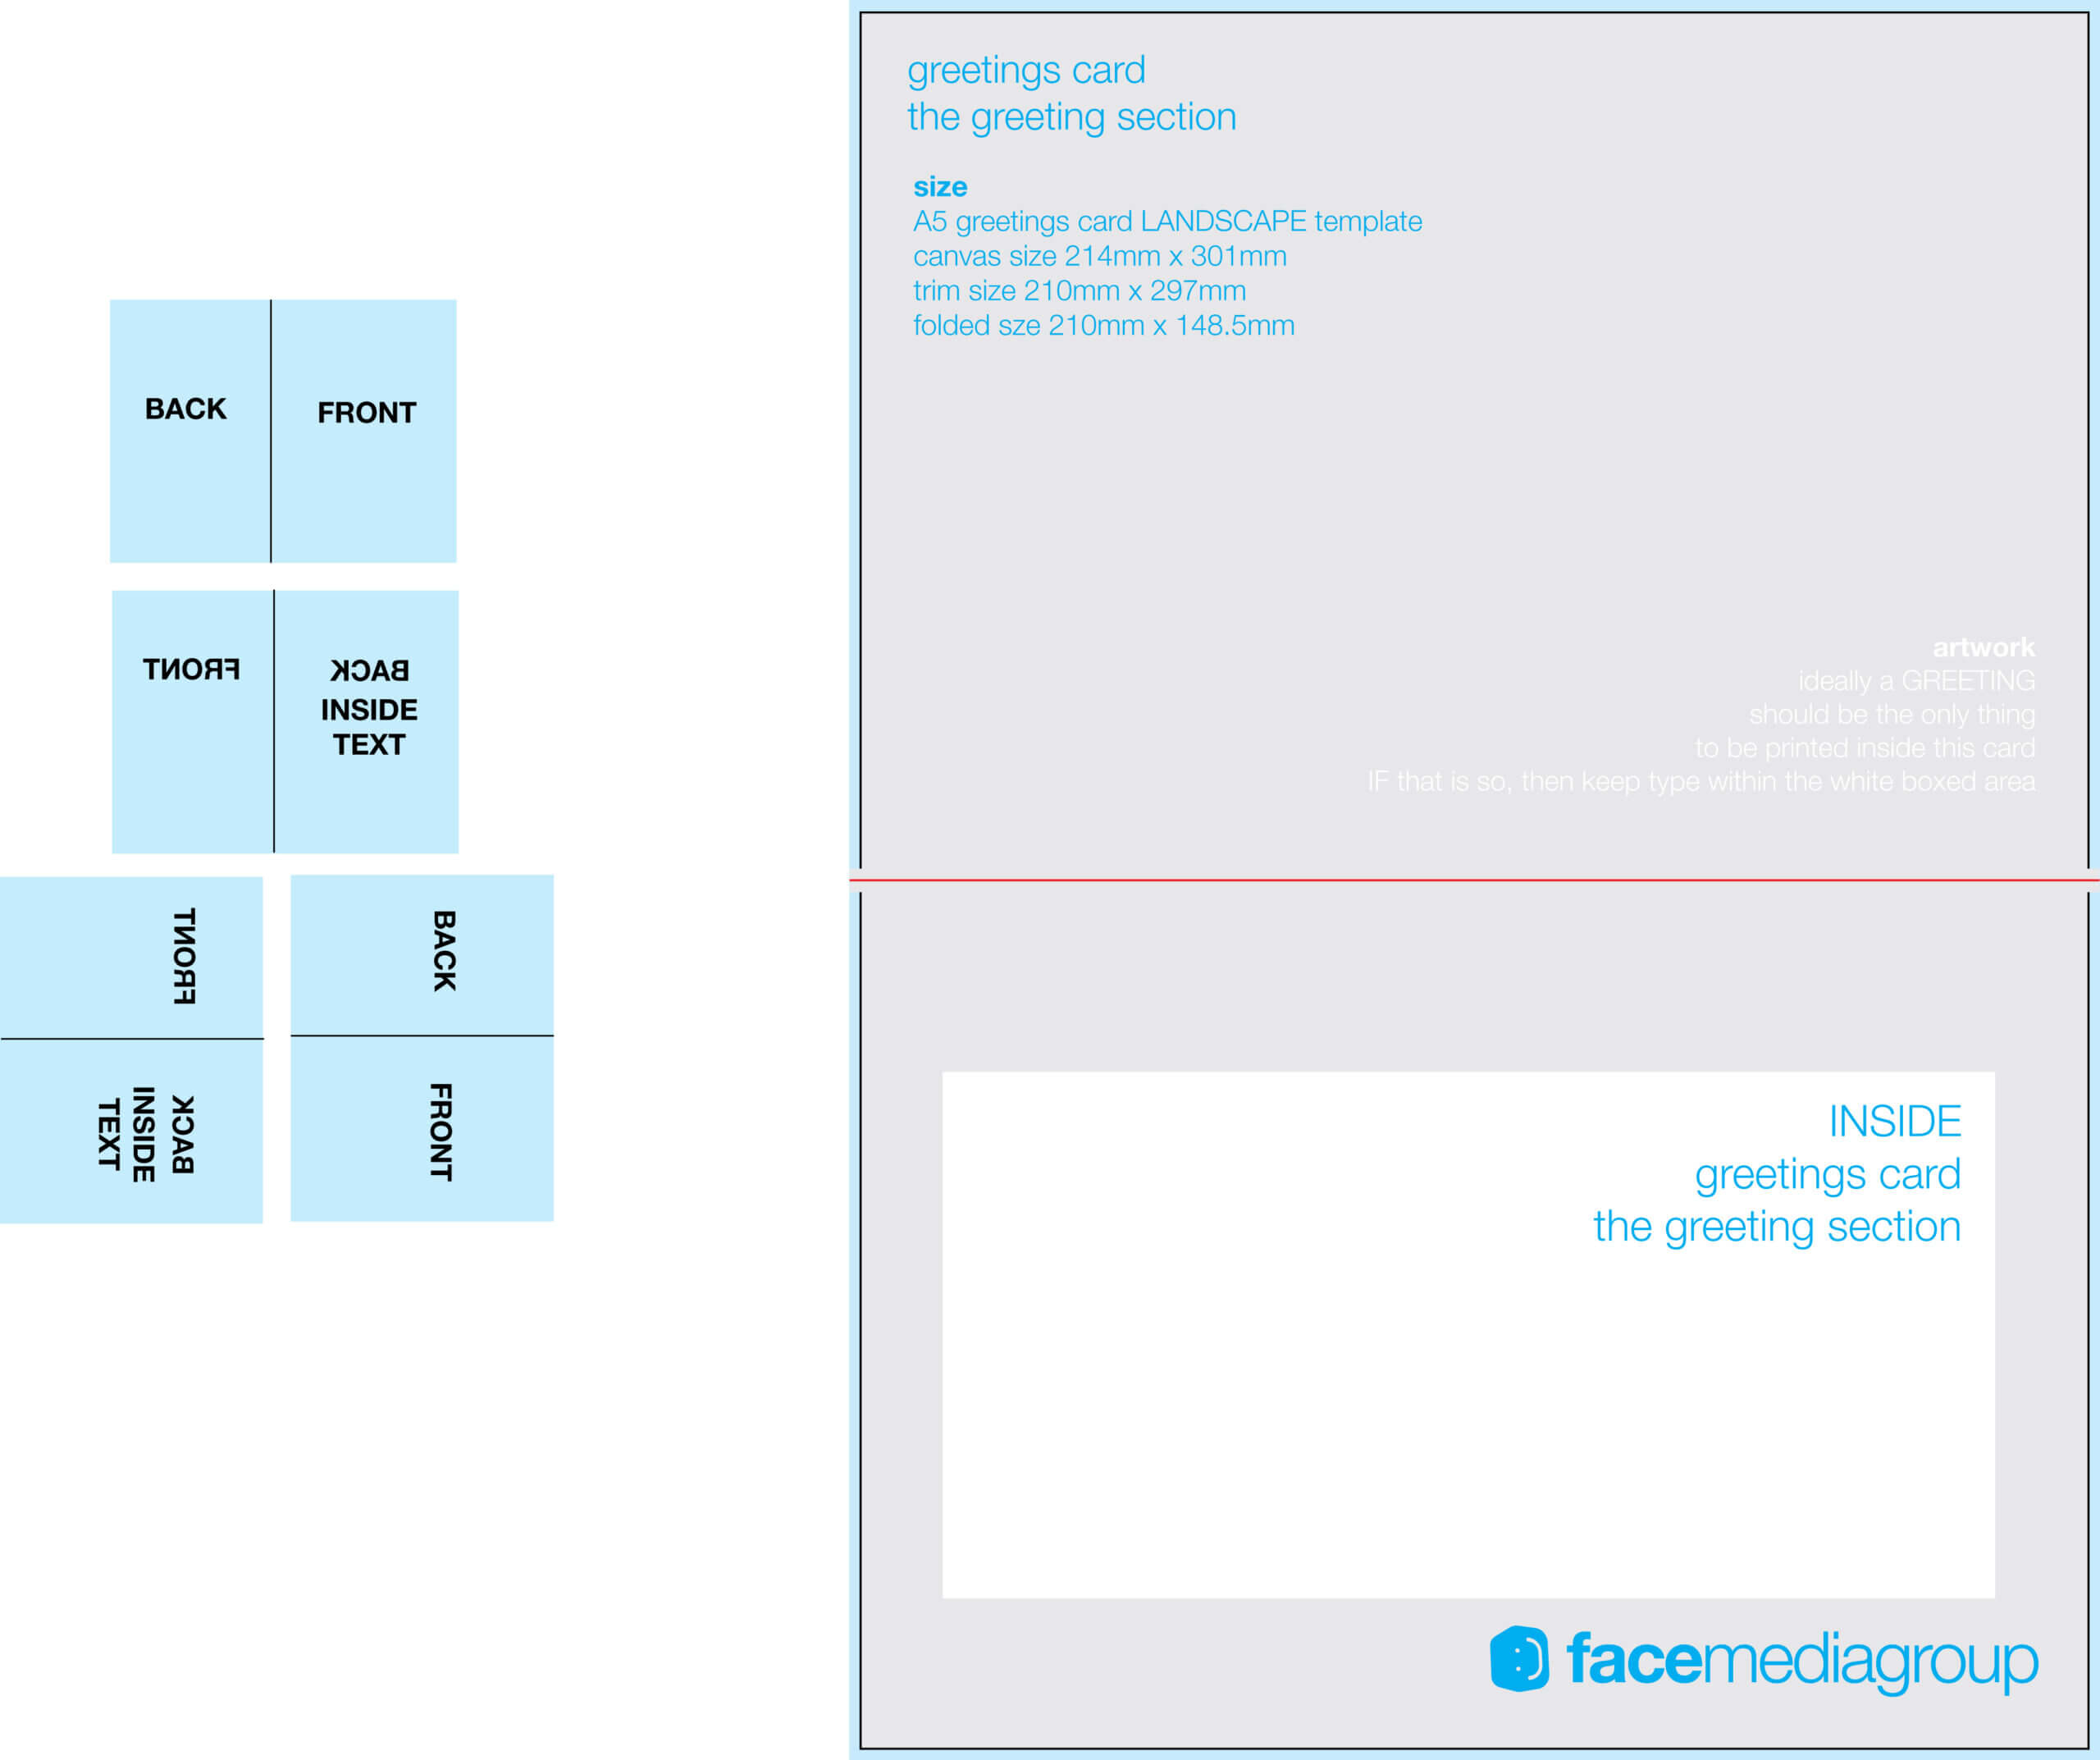 Free Blank Greetings Card Artwork Templates For Download Pertaining To Greeting Card Layout Templates